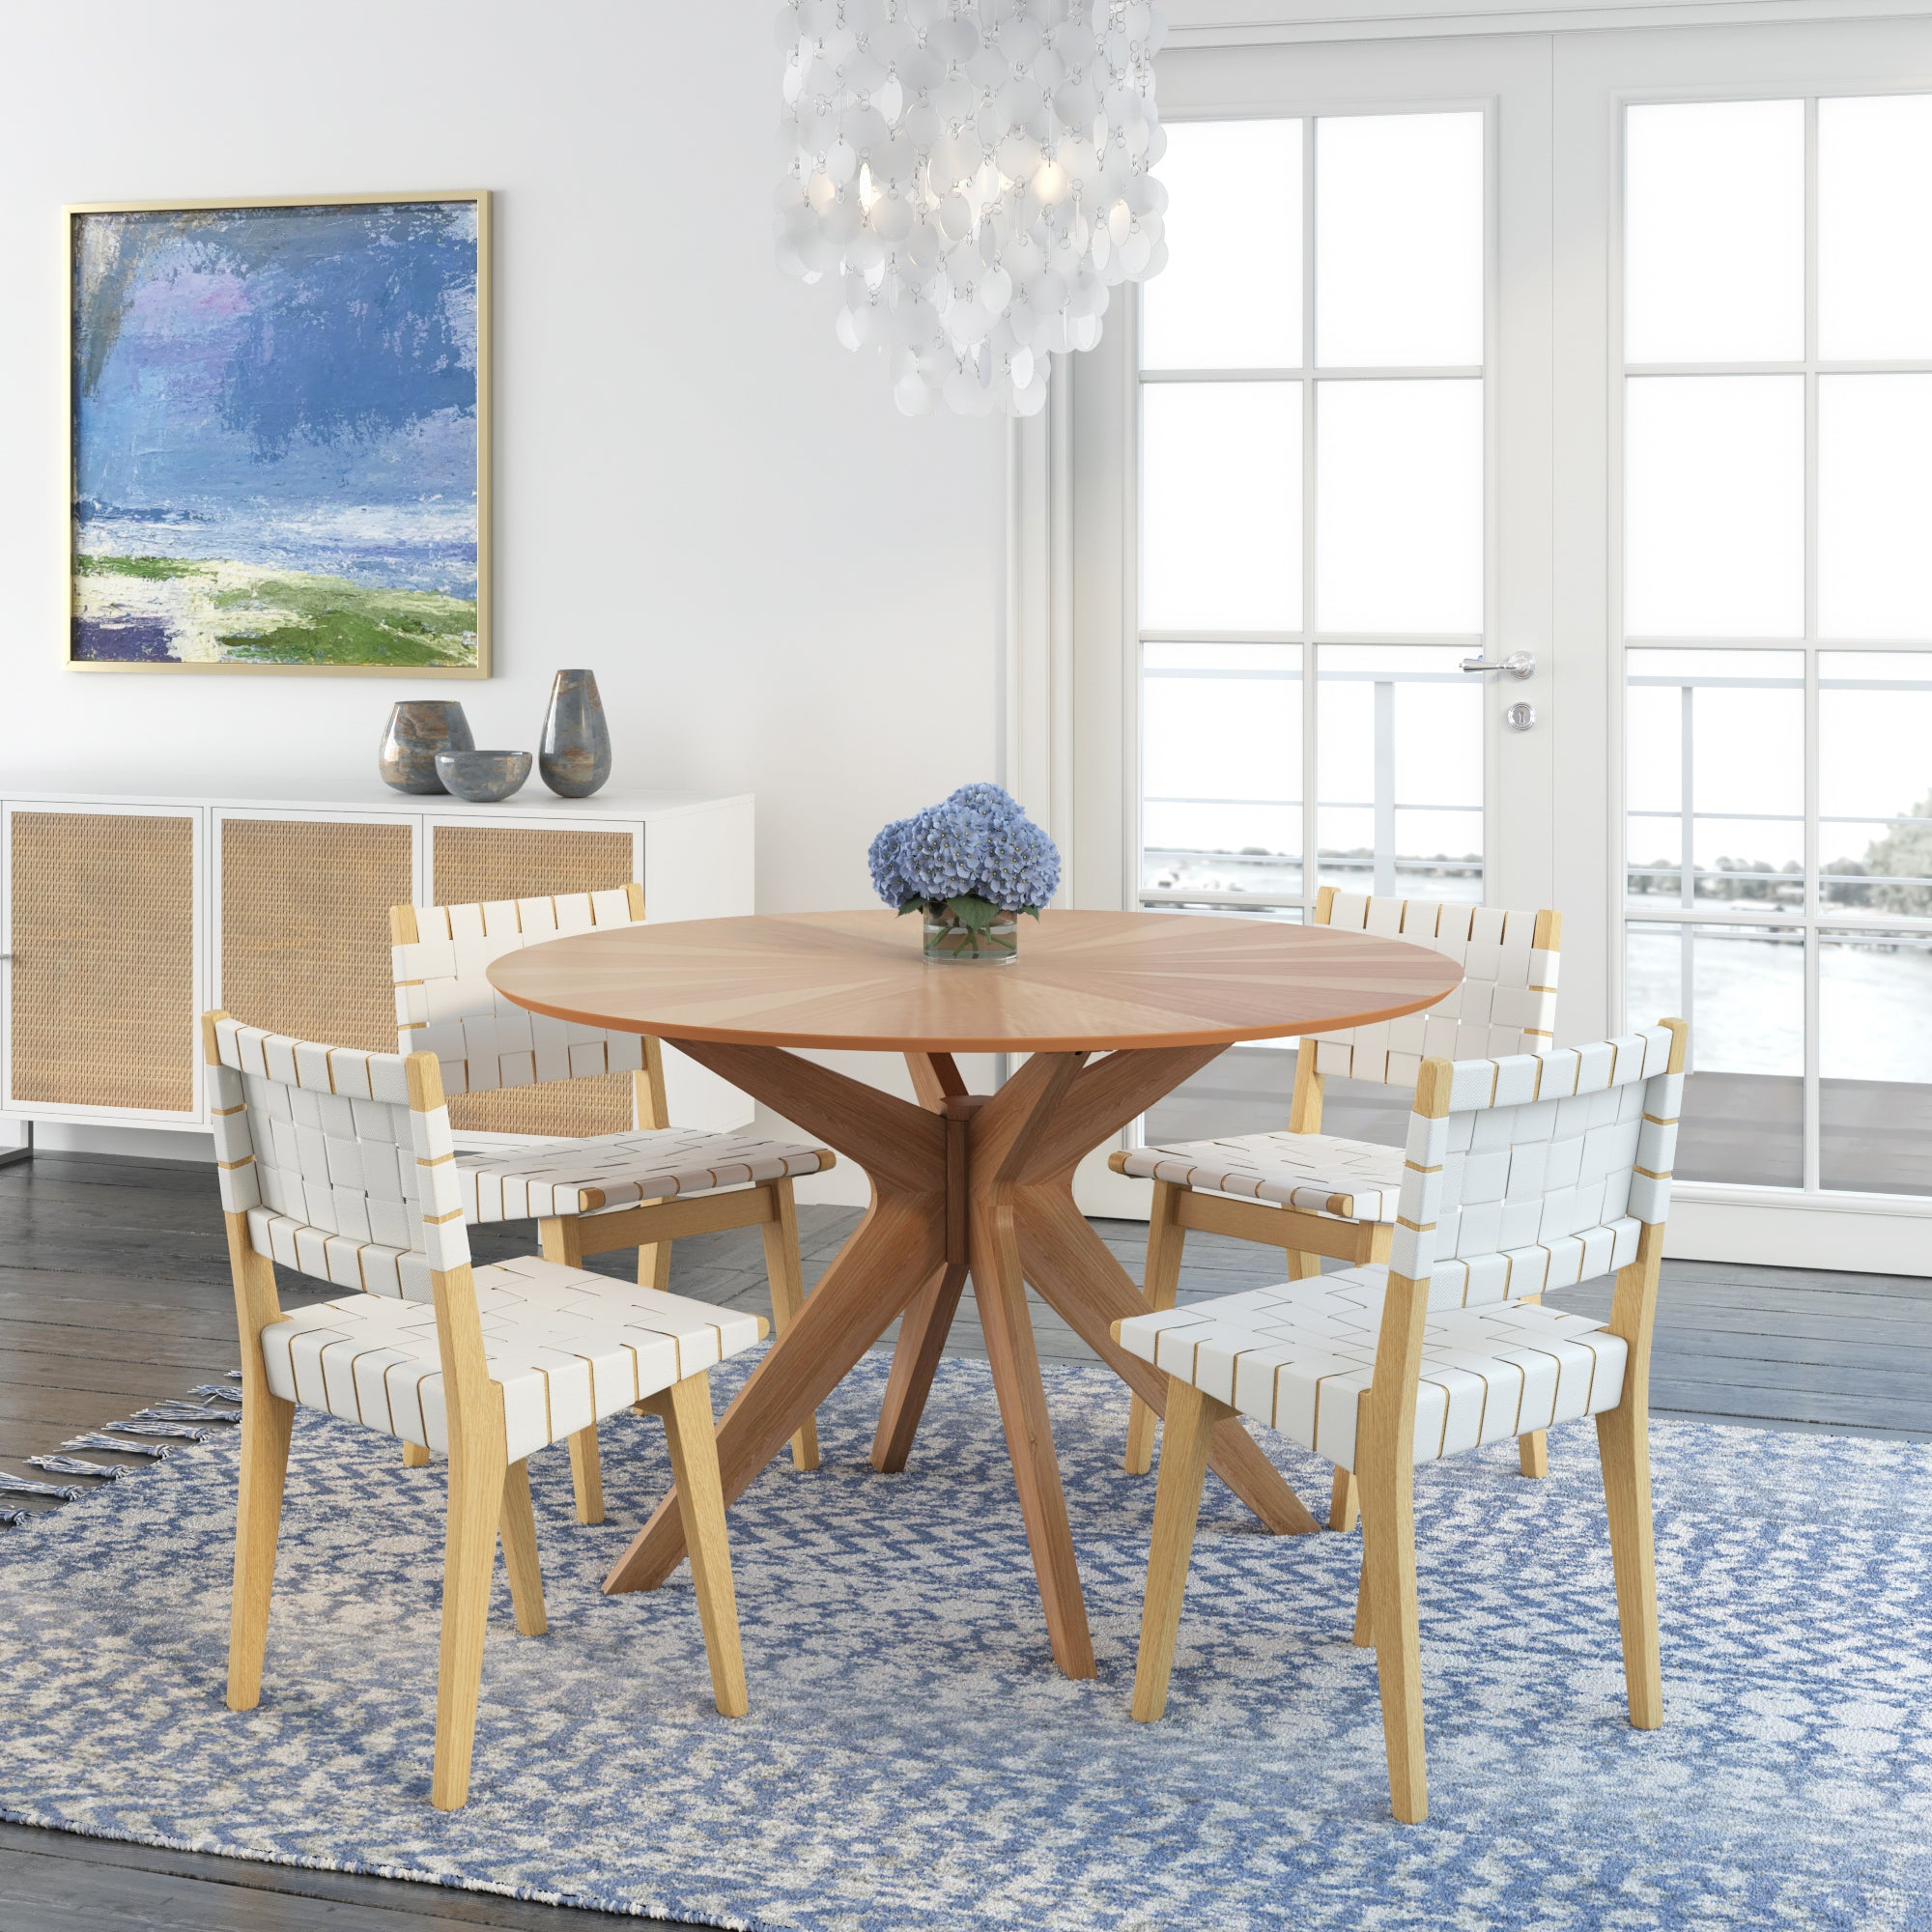 Hemming Natural Dining Chair